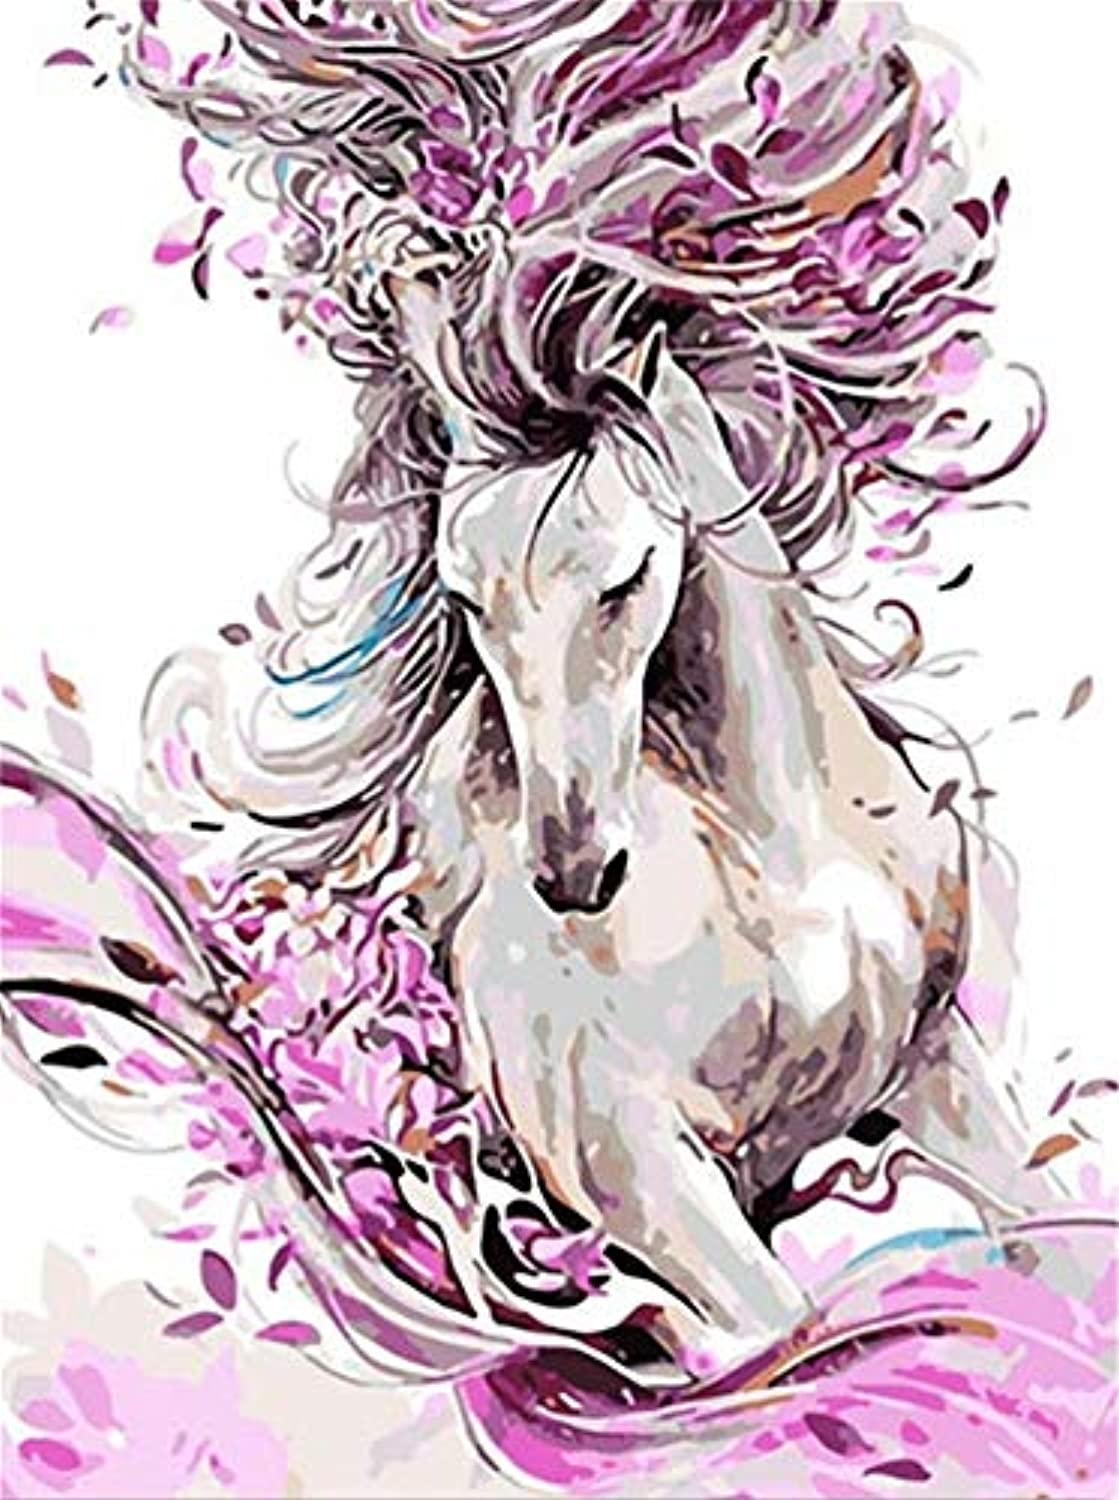 Jigsaw Puzzle 1000 Piece Abstract White Horse Classic Puzzle DIY Kit Wooden Toy Unique Gift Home Decor